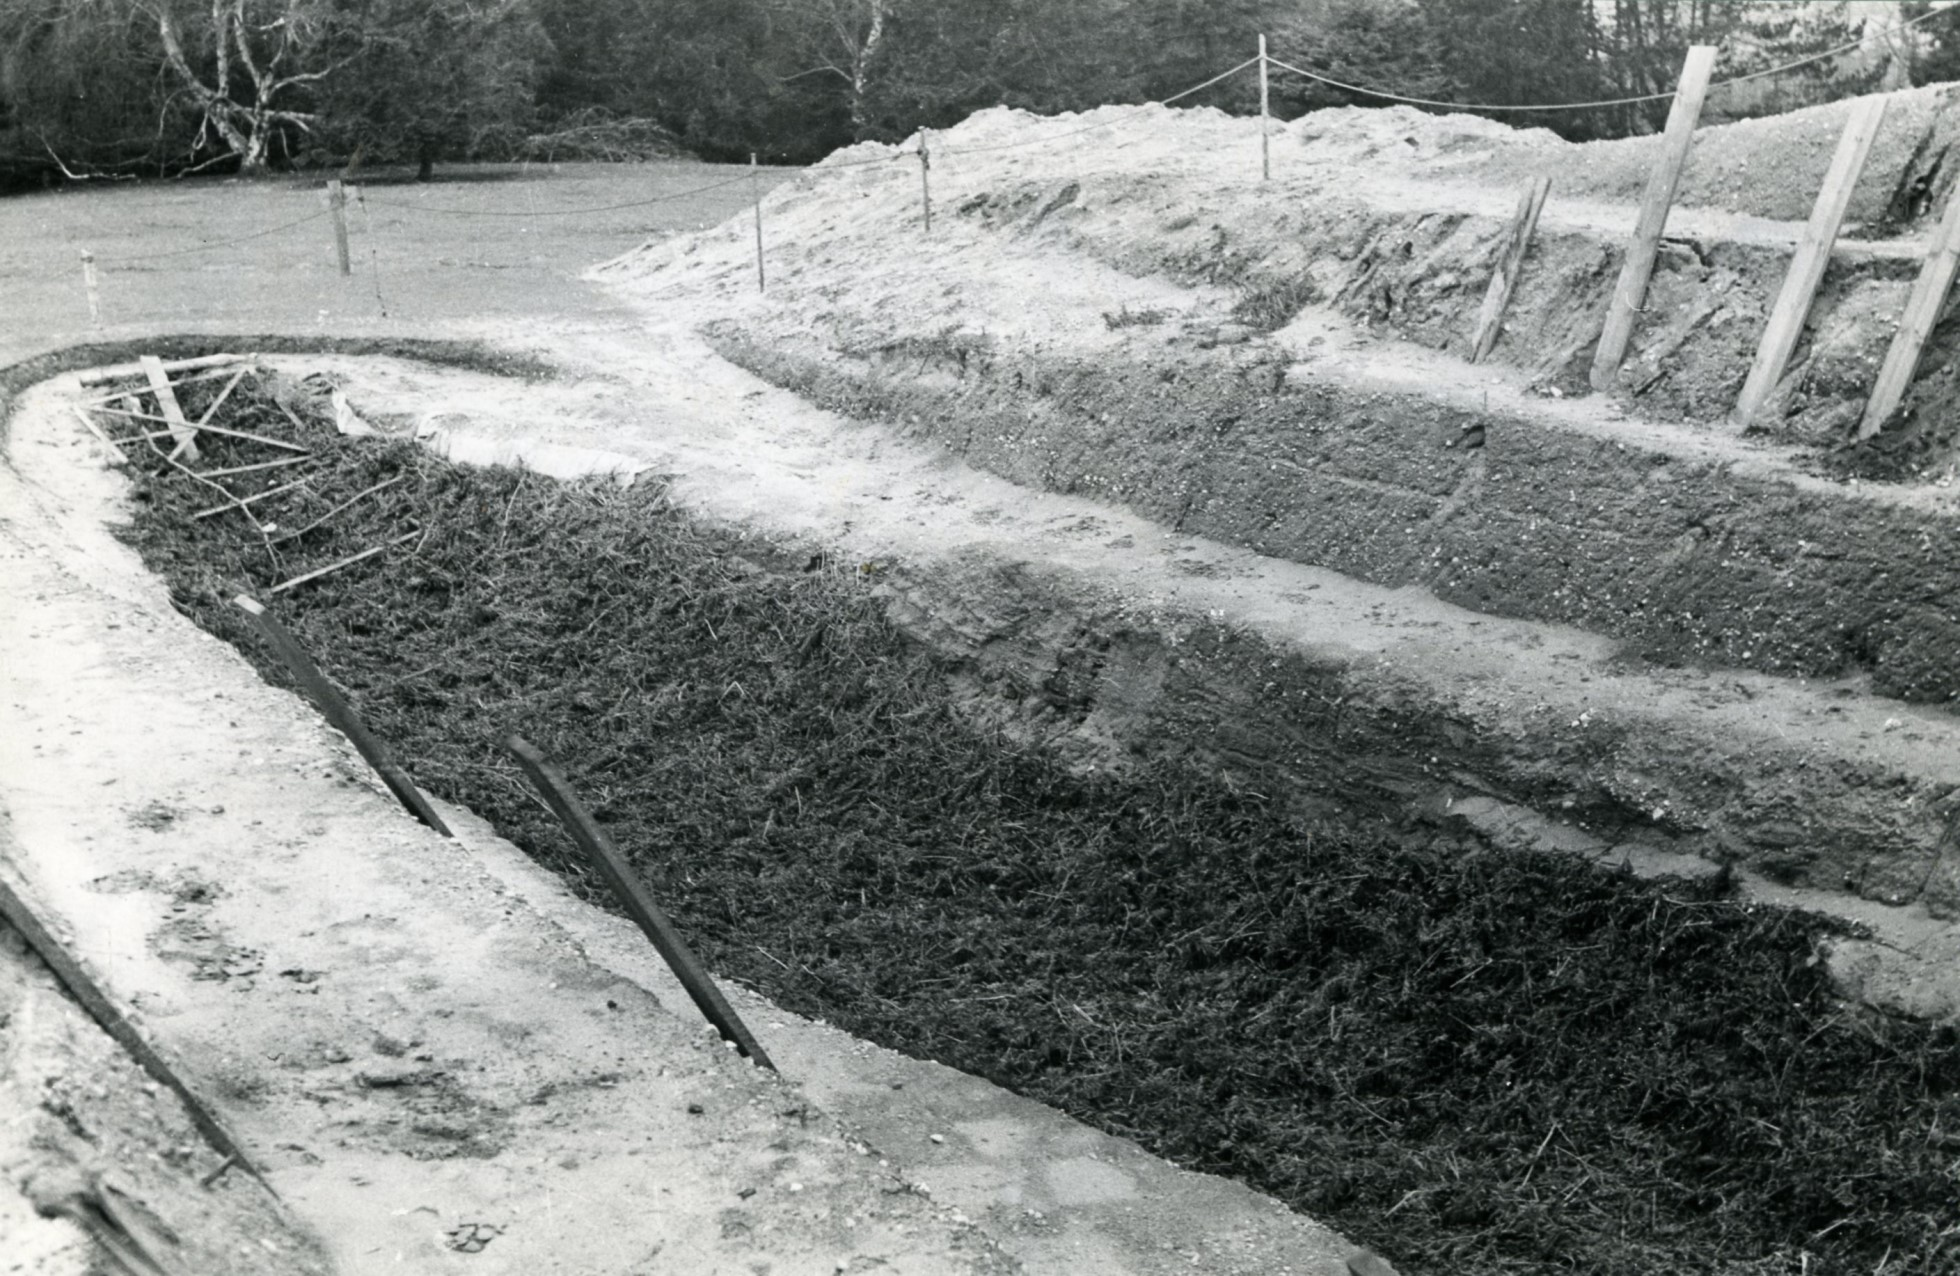 A black and white photo of the trench filled with bracken.